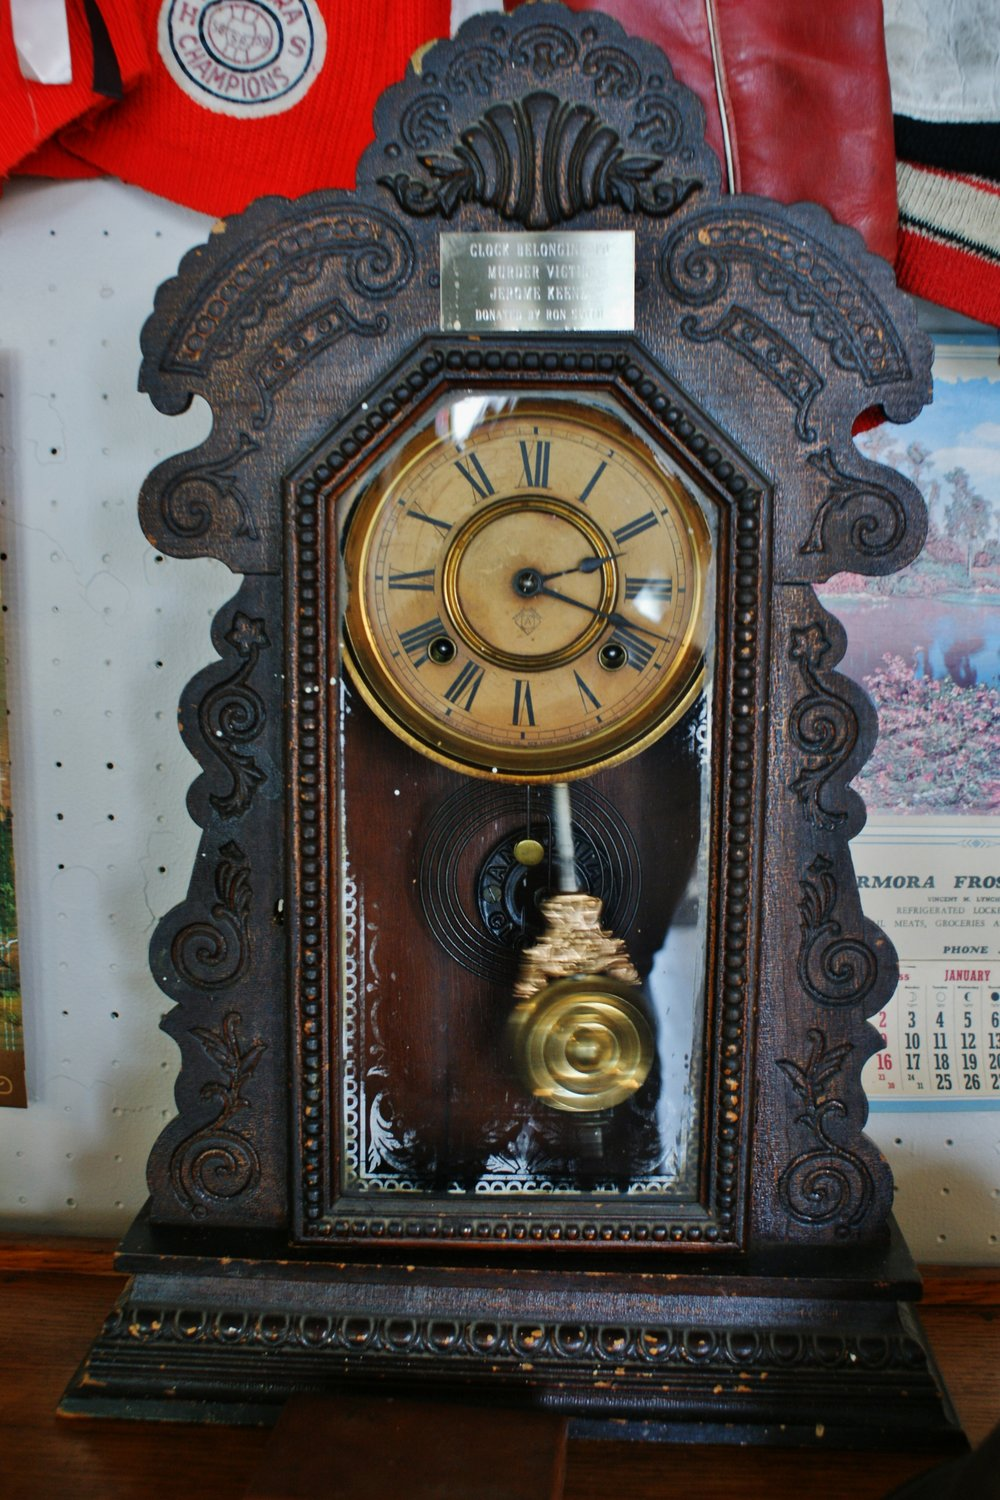 The clock that witnessed the murder of Jerome Keene